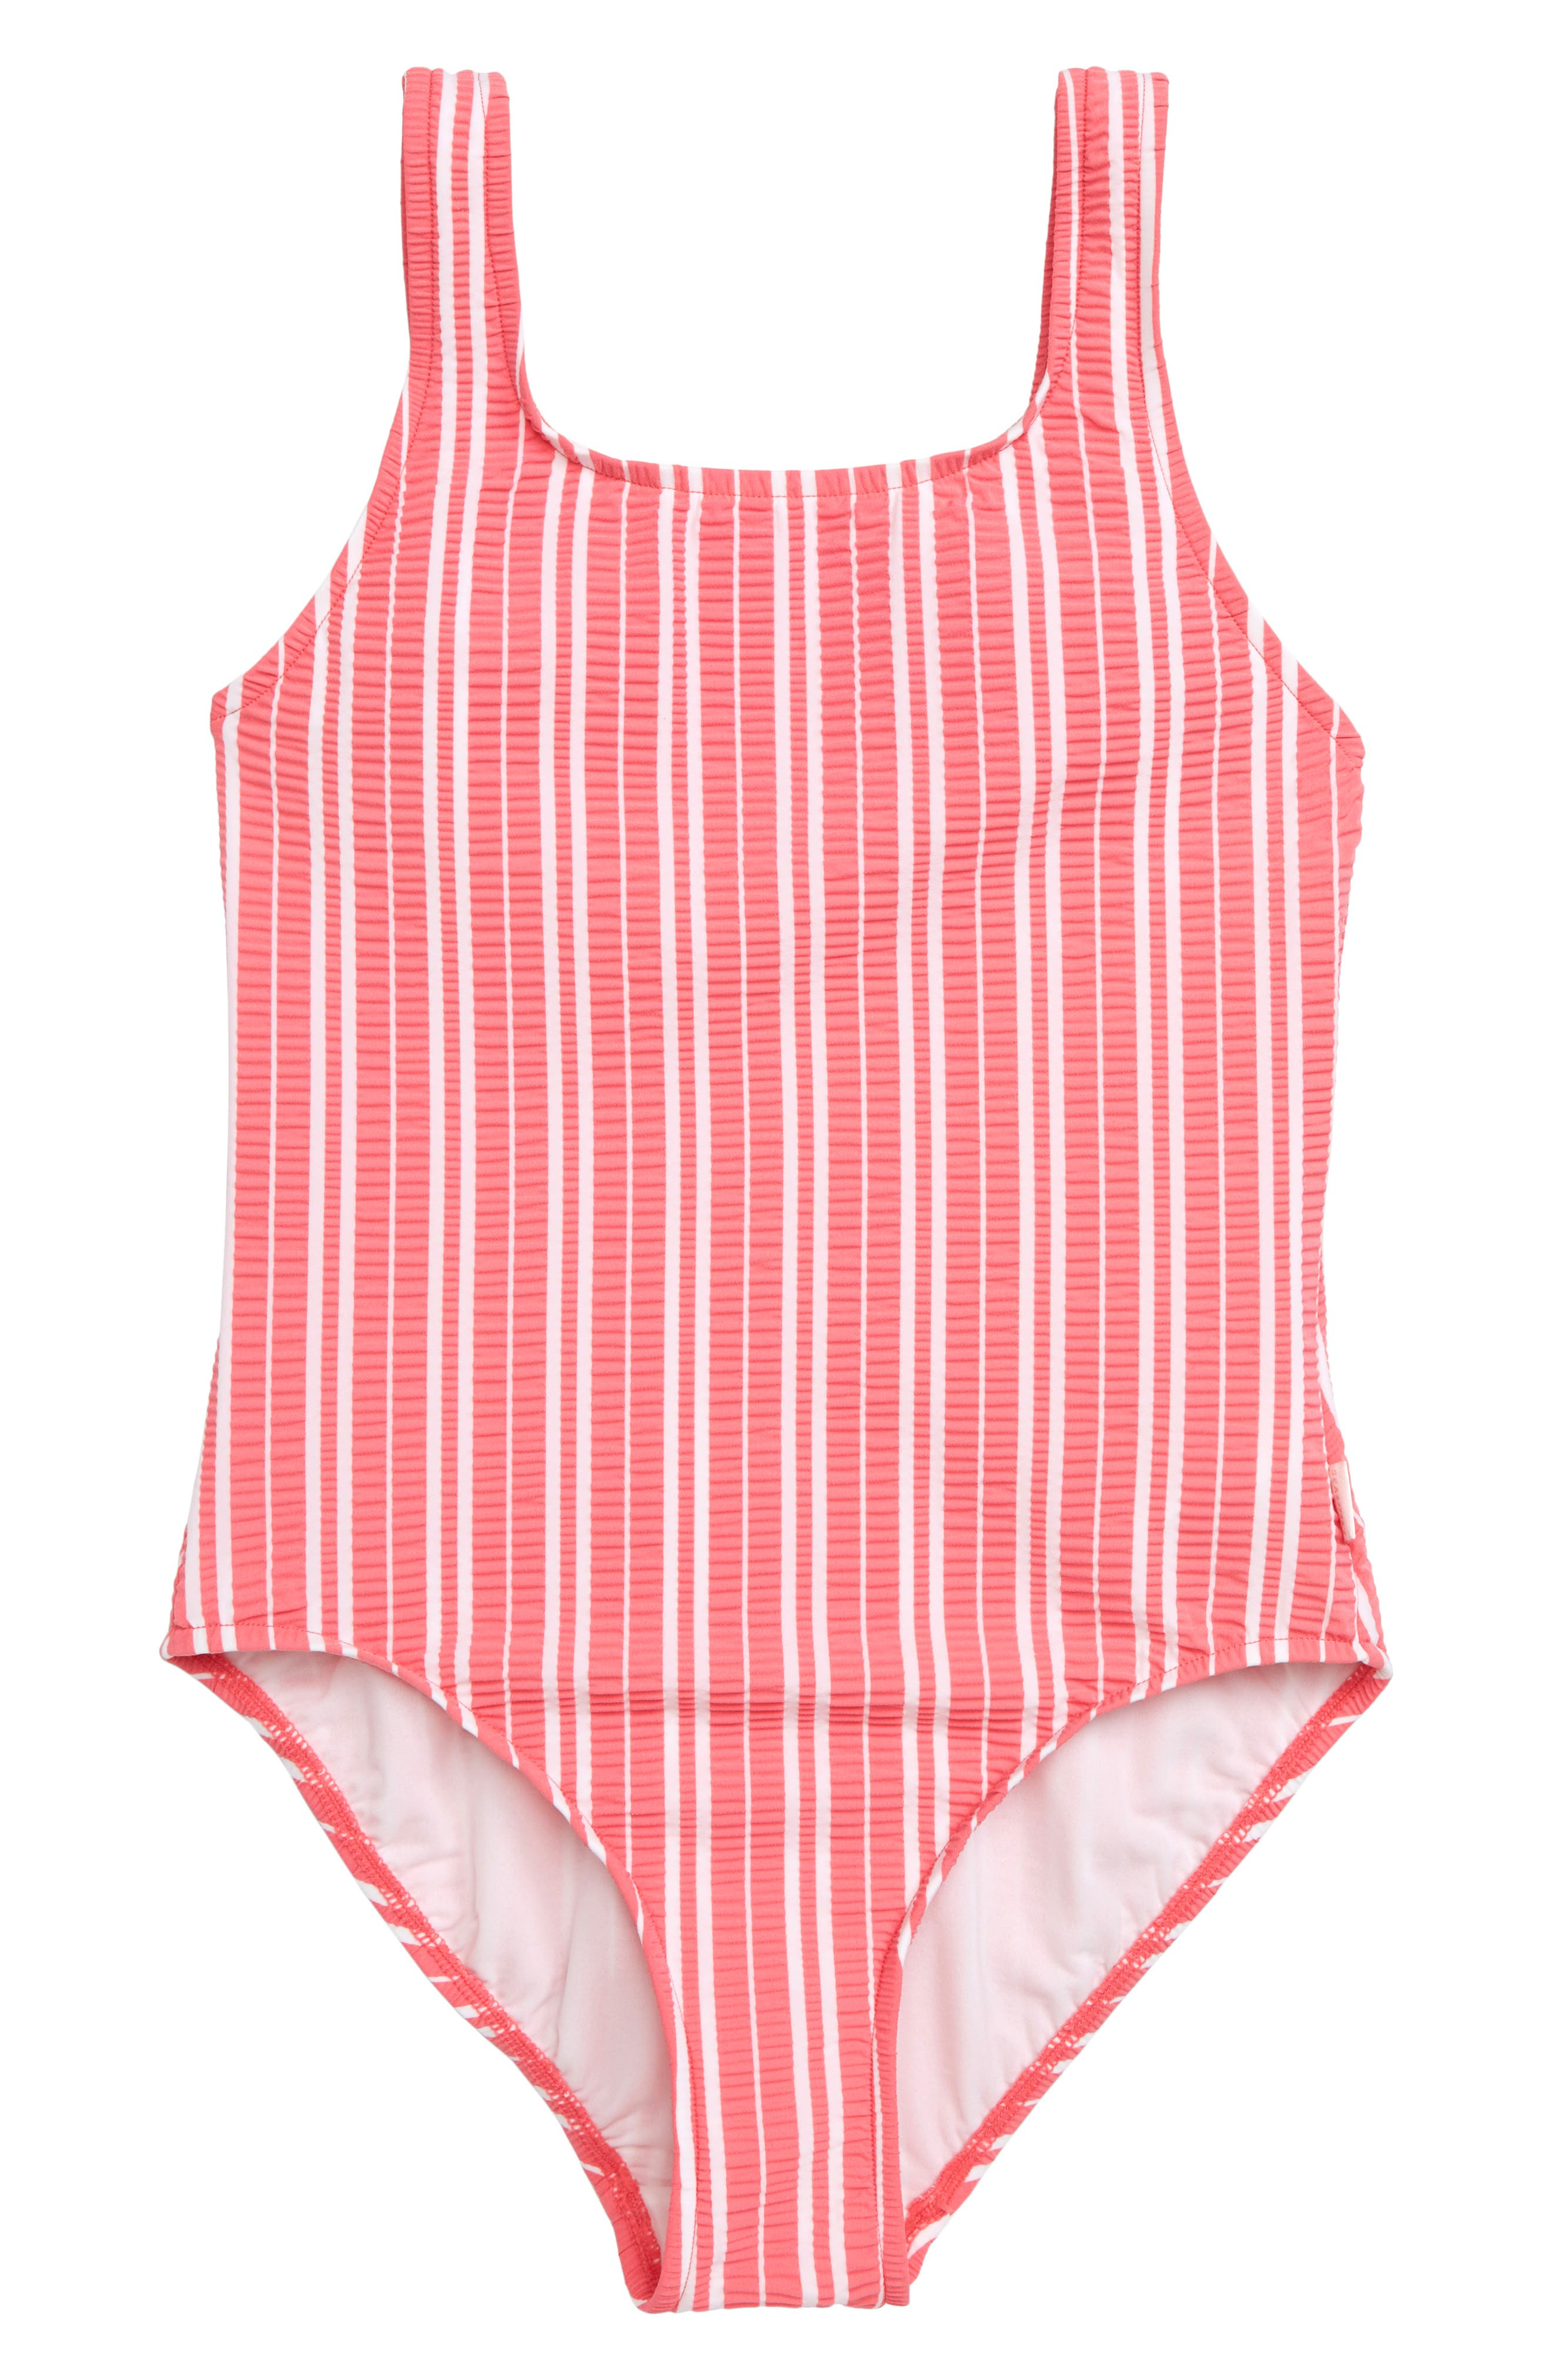 Tropical Vibes '80s One-Piece Swimsuit,                             Main thumbnail 1, color,                             RED/ WHITE